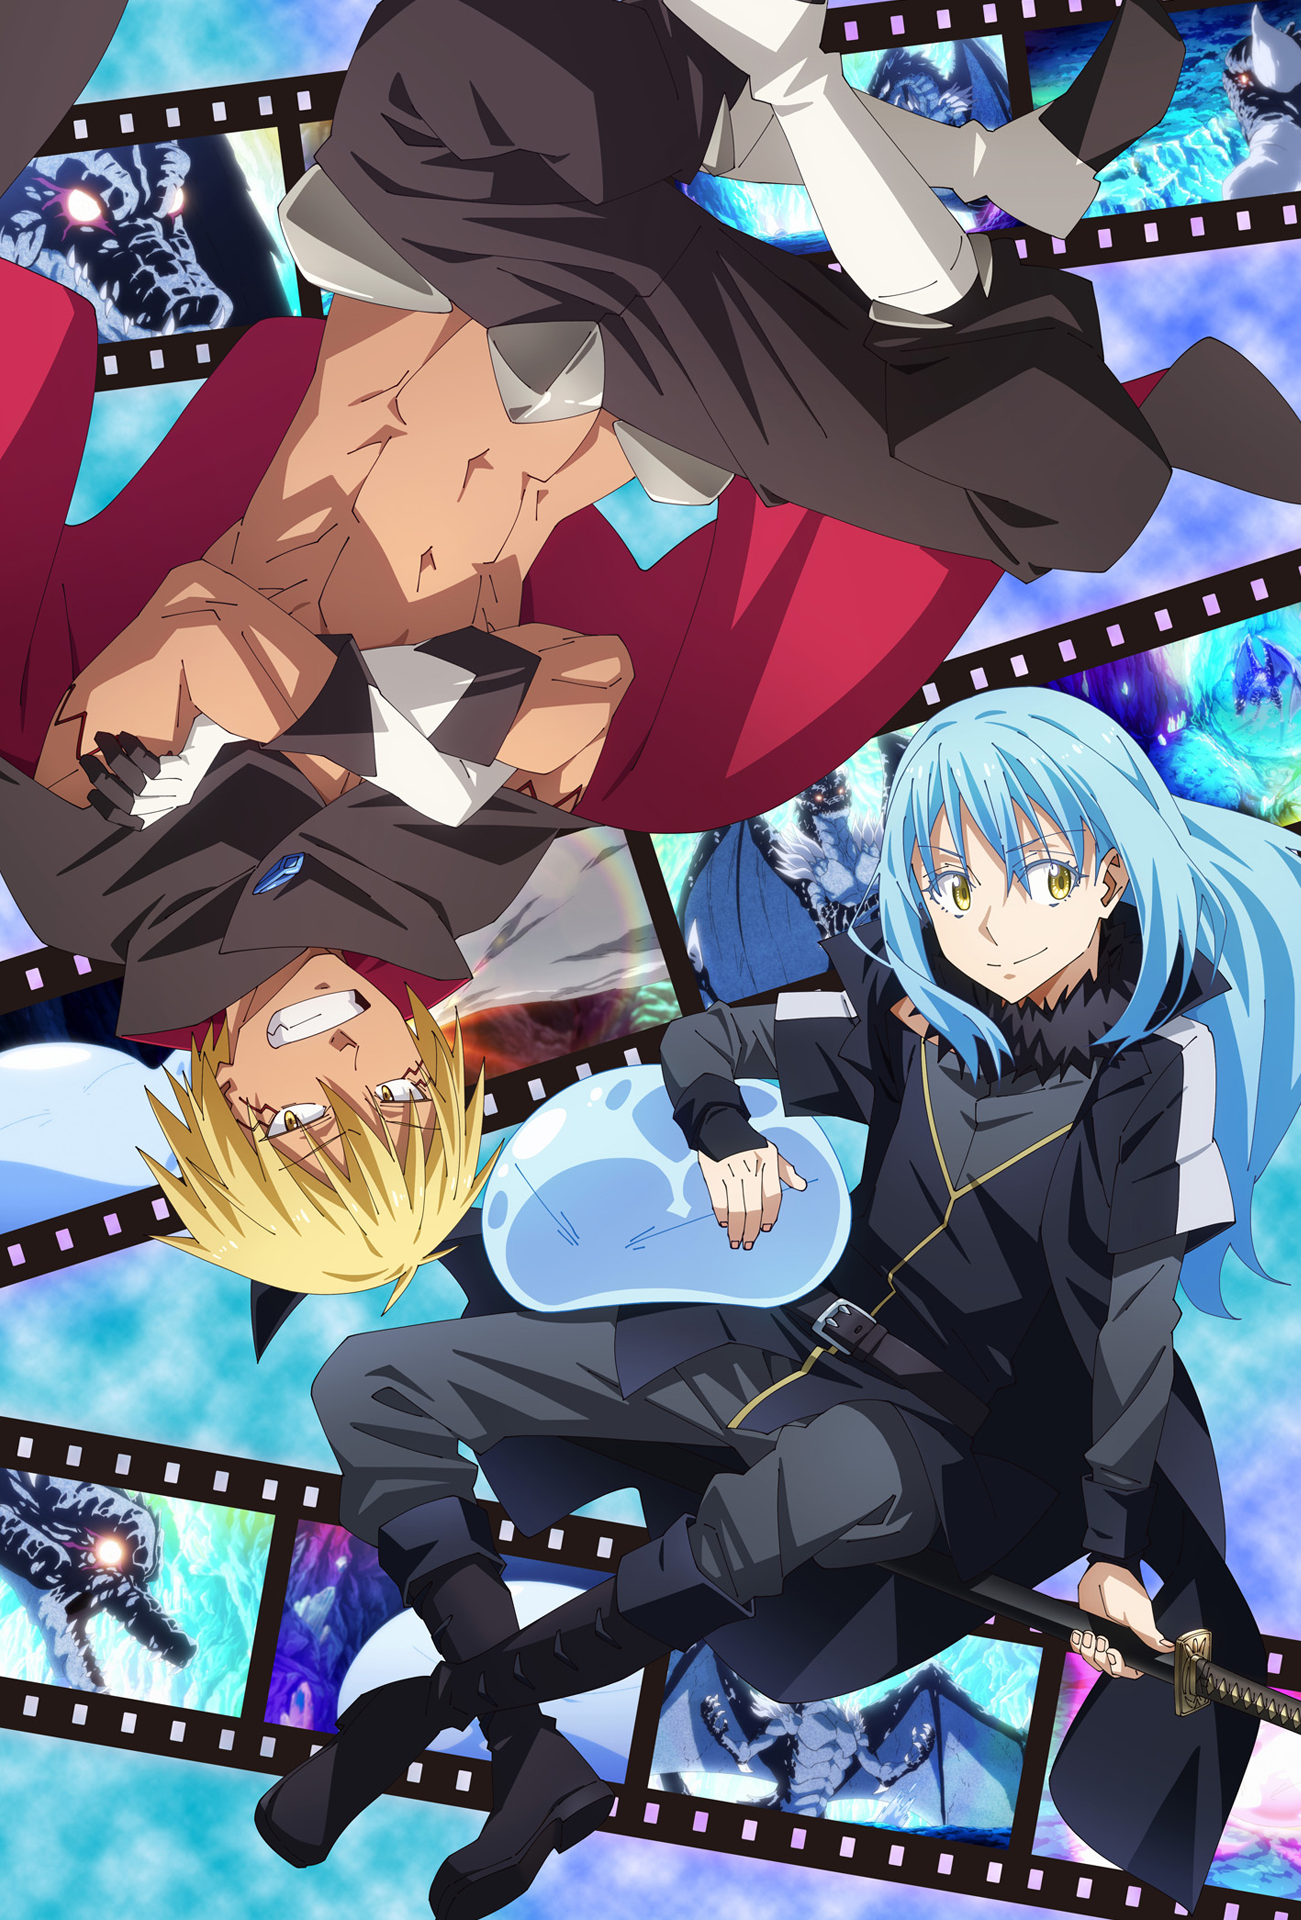 That Time I Got Reincarnated as a Slime S2 Part II Anime of the Season